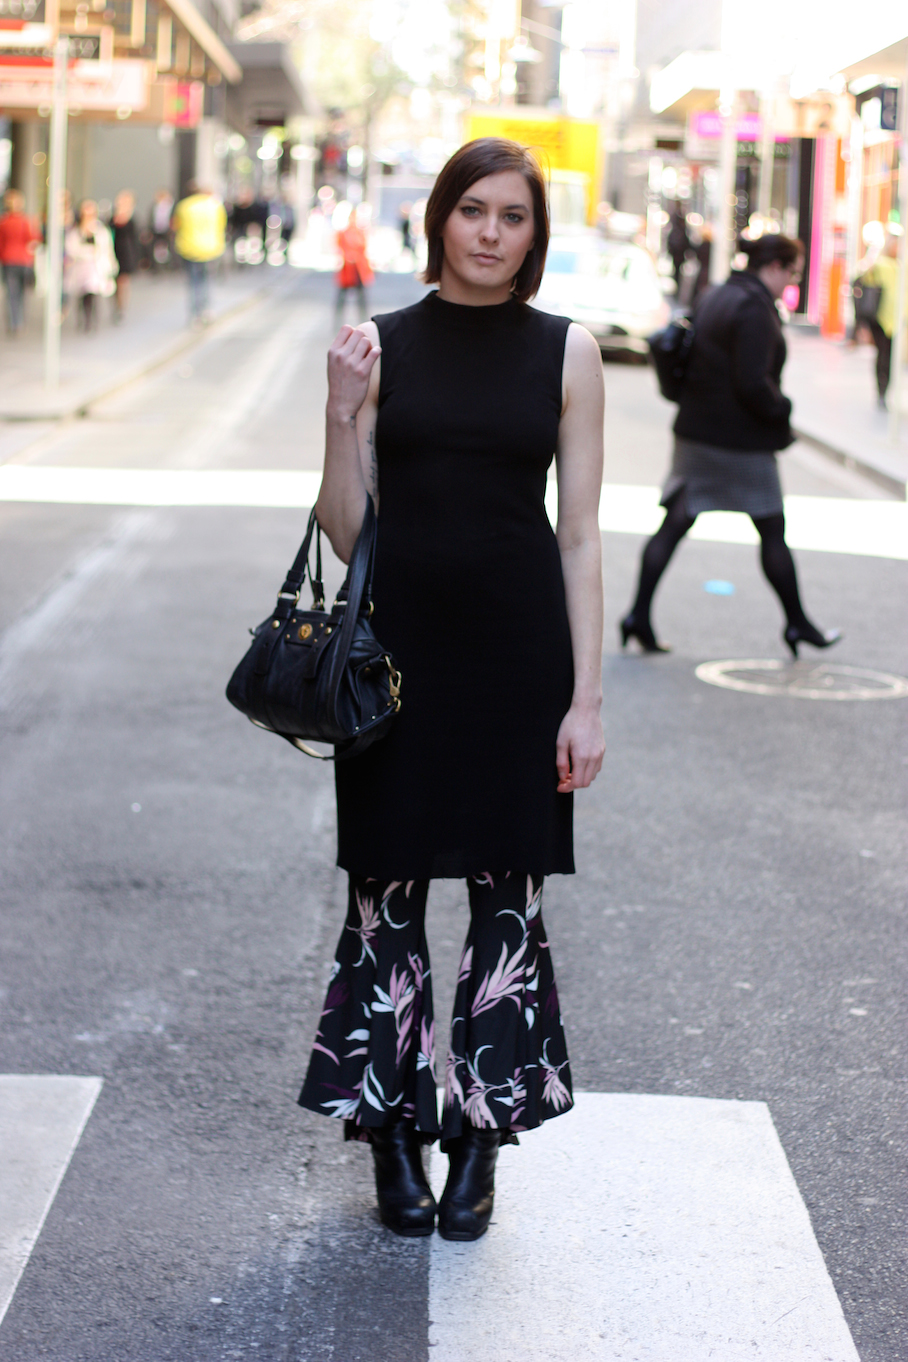 """Vic: Jordana-Lee Pearce, blogger, Little Collins St. """"My style is biker chic with a 70's twist."""" <a href=""""http://www.marythamphotography.weebly.com/"""" target=""""_blank""""> Photo: Mary Tham </a>"""